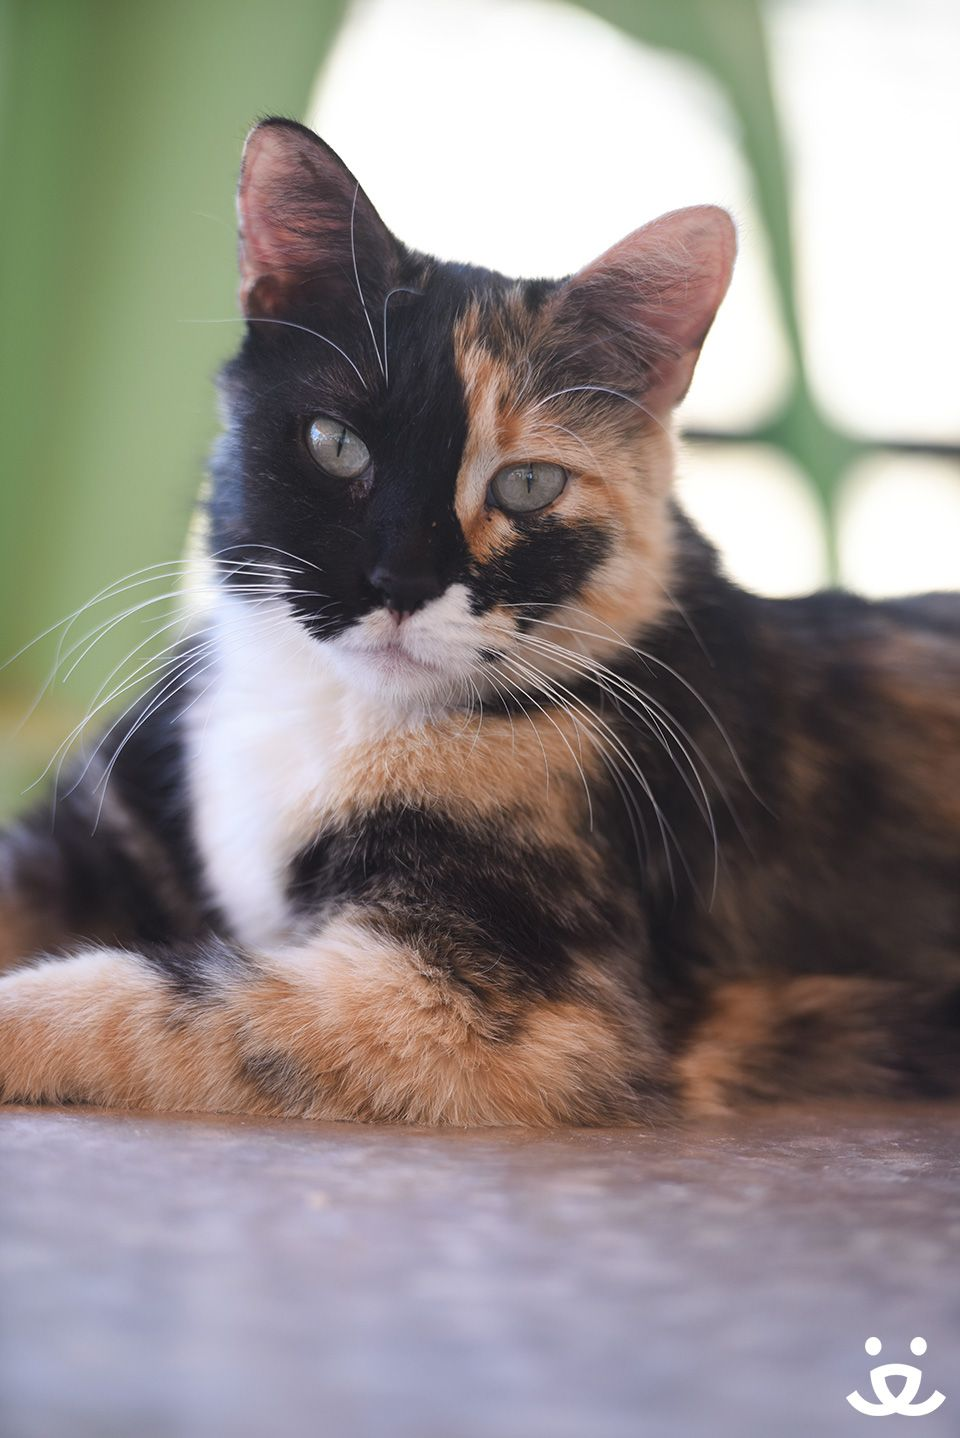 Adopt From Our Sanctuary Cute Cats And Kittens Cute Animals Cute Kitten Pics